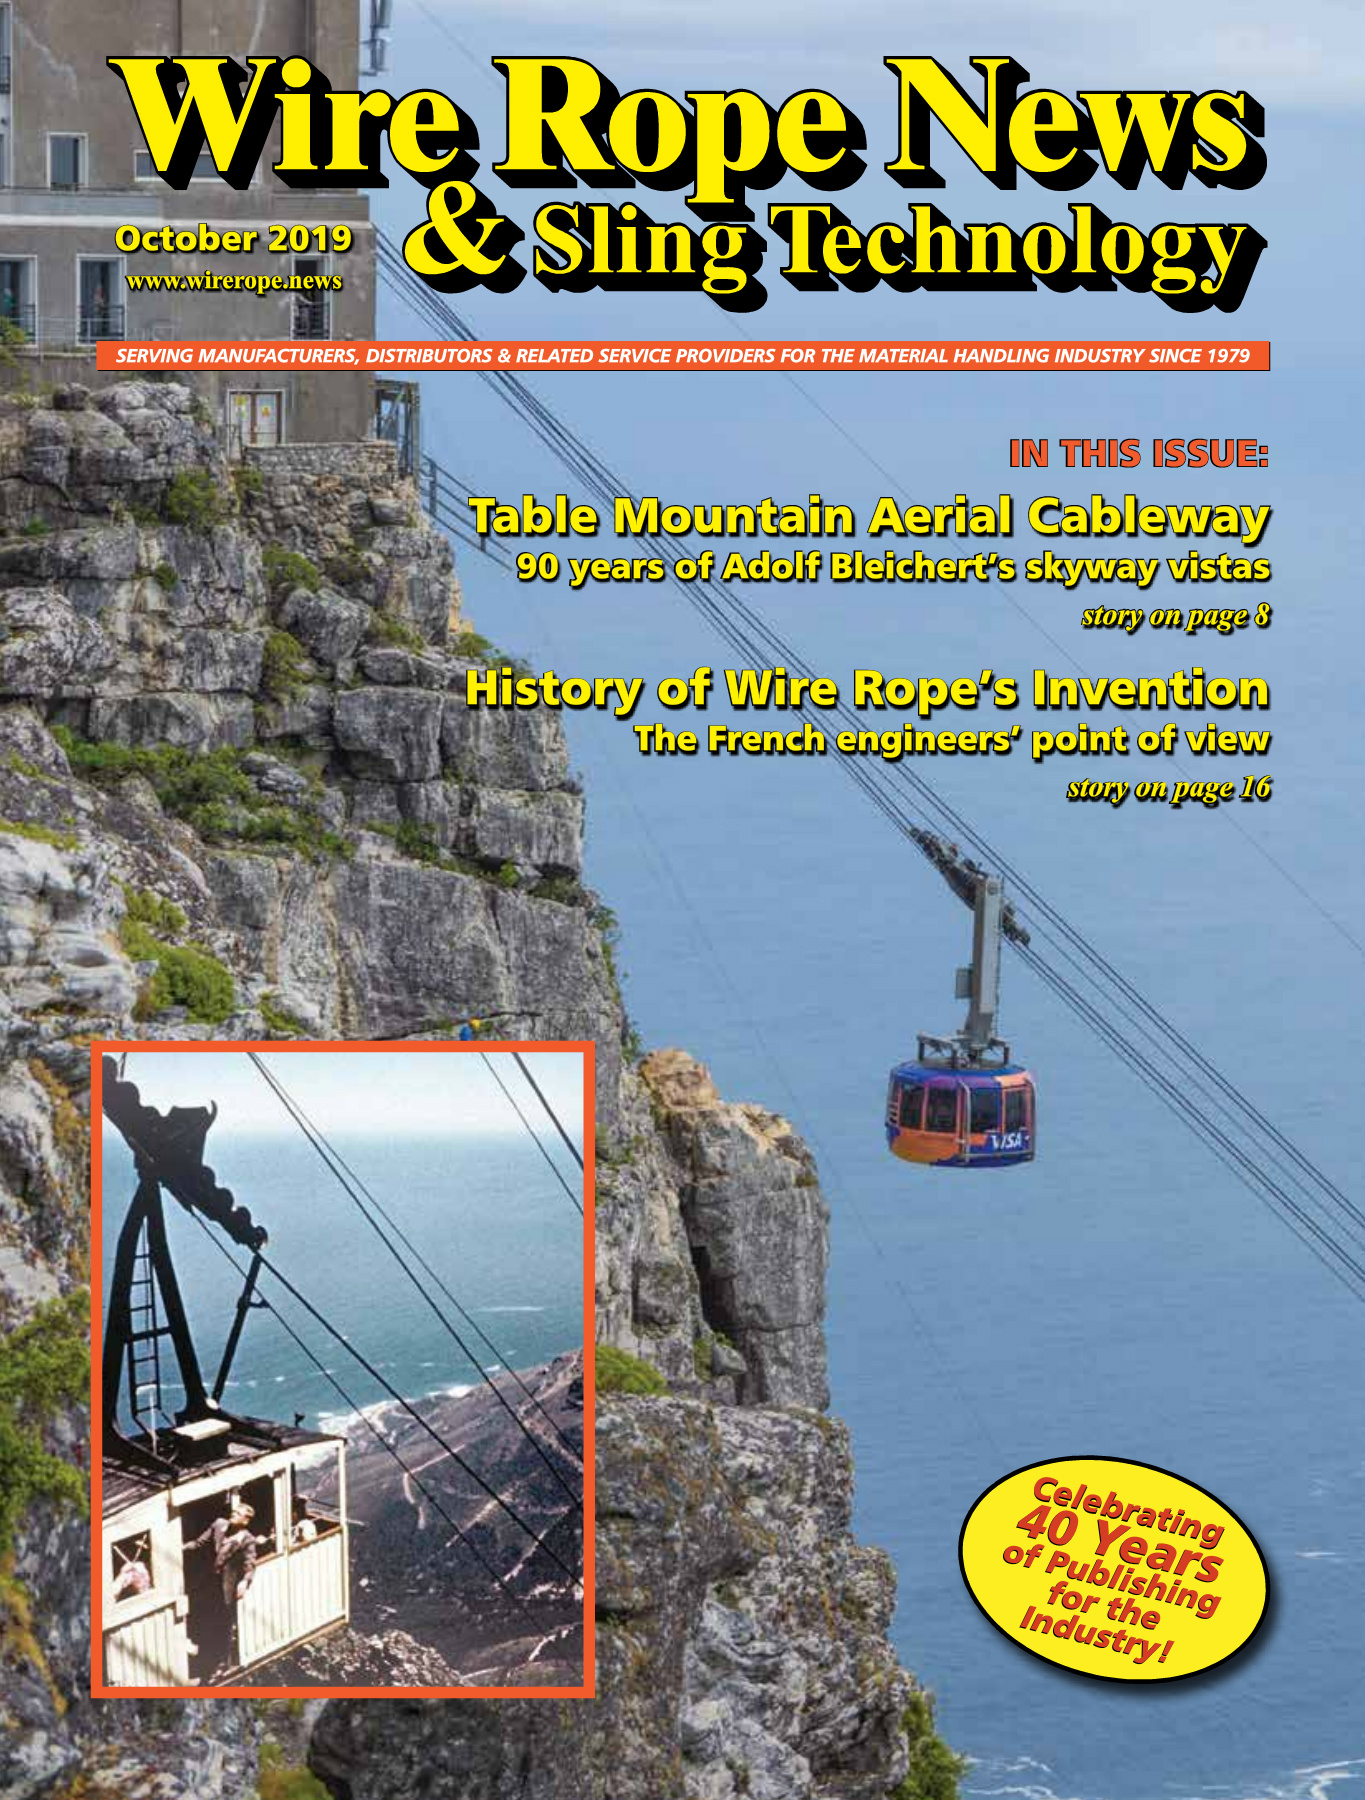 Wire Rope News and Sling Technology is a magazine for the lifting and rigging industry